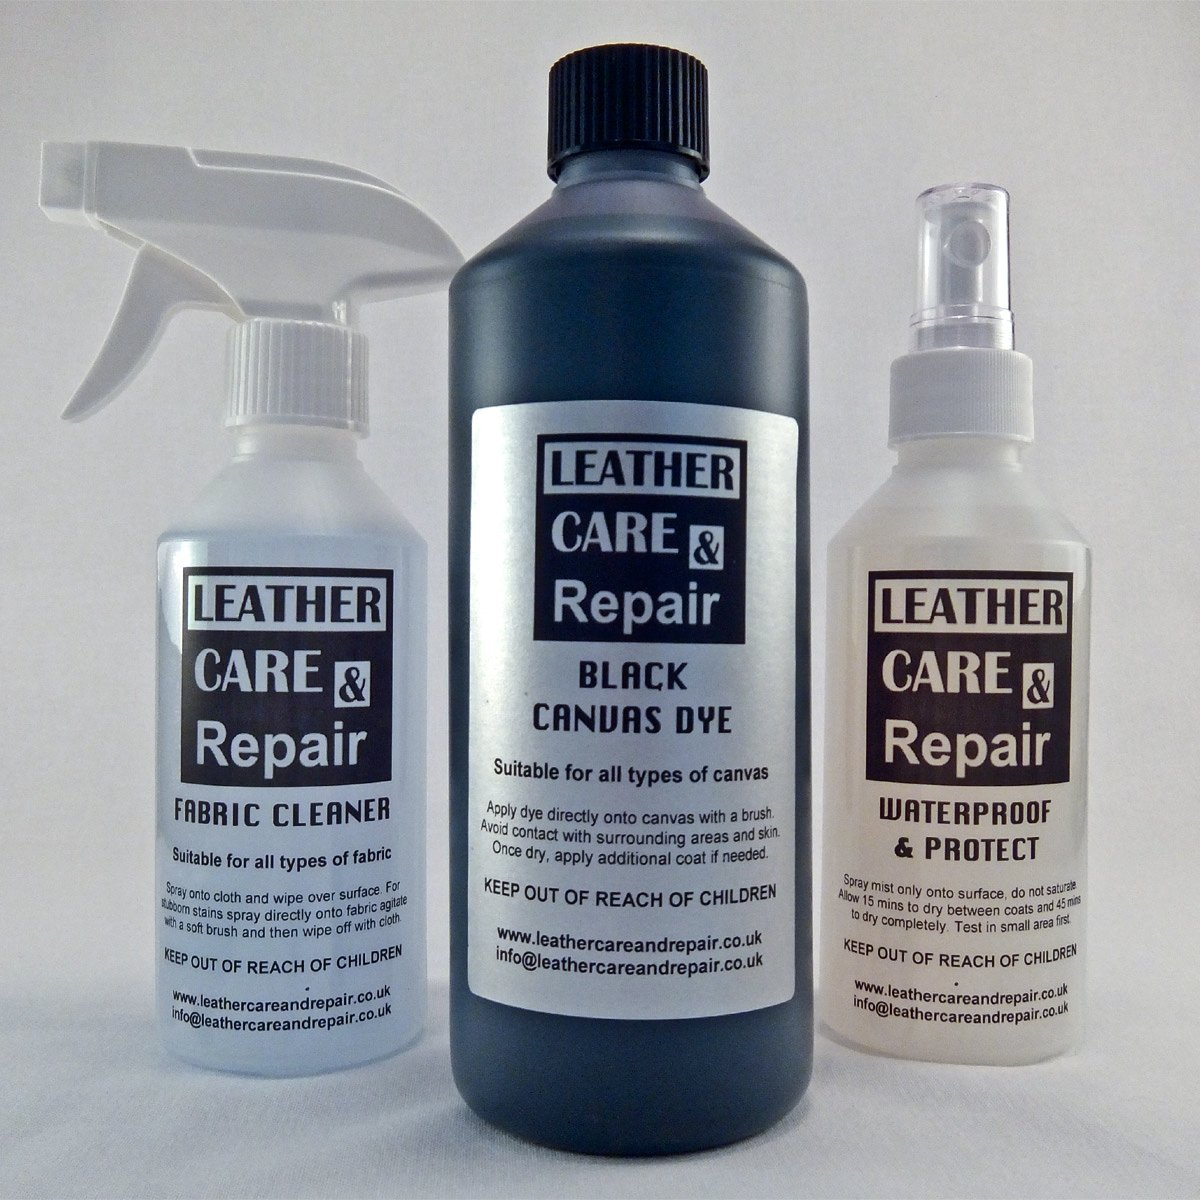 CANVAS HOOD CLEANER, 500ml RESTORER & WATERPROOFER KIT Leather Care & Repair